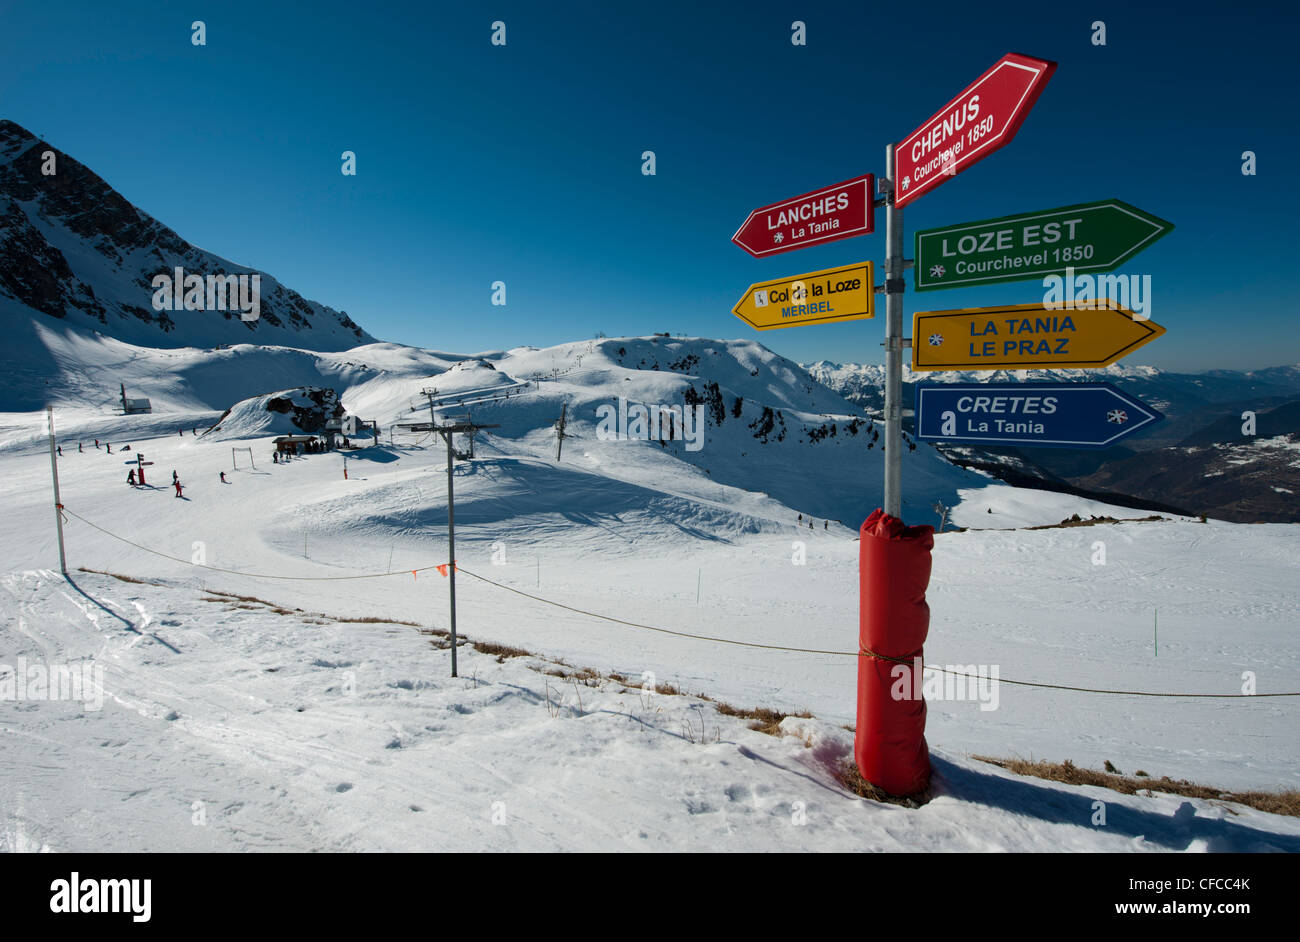 La Tania Stock Photos La Tania Stock Images Alamy